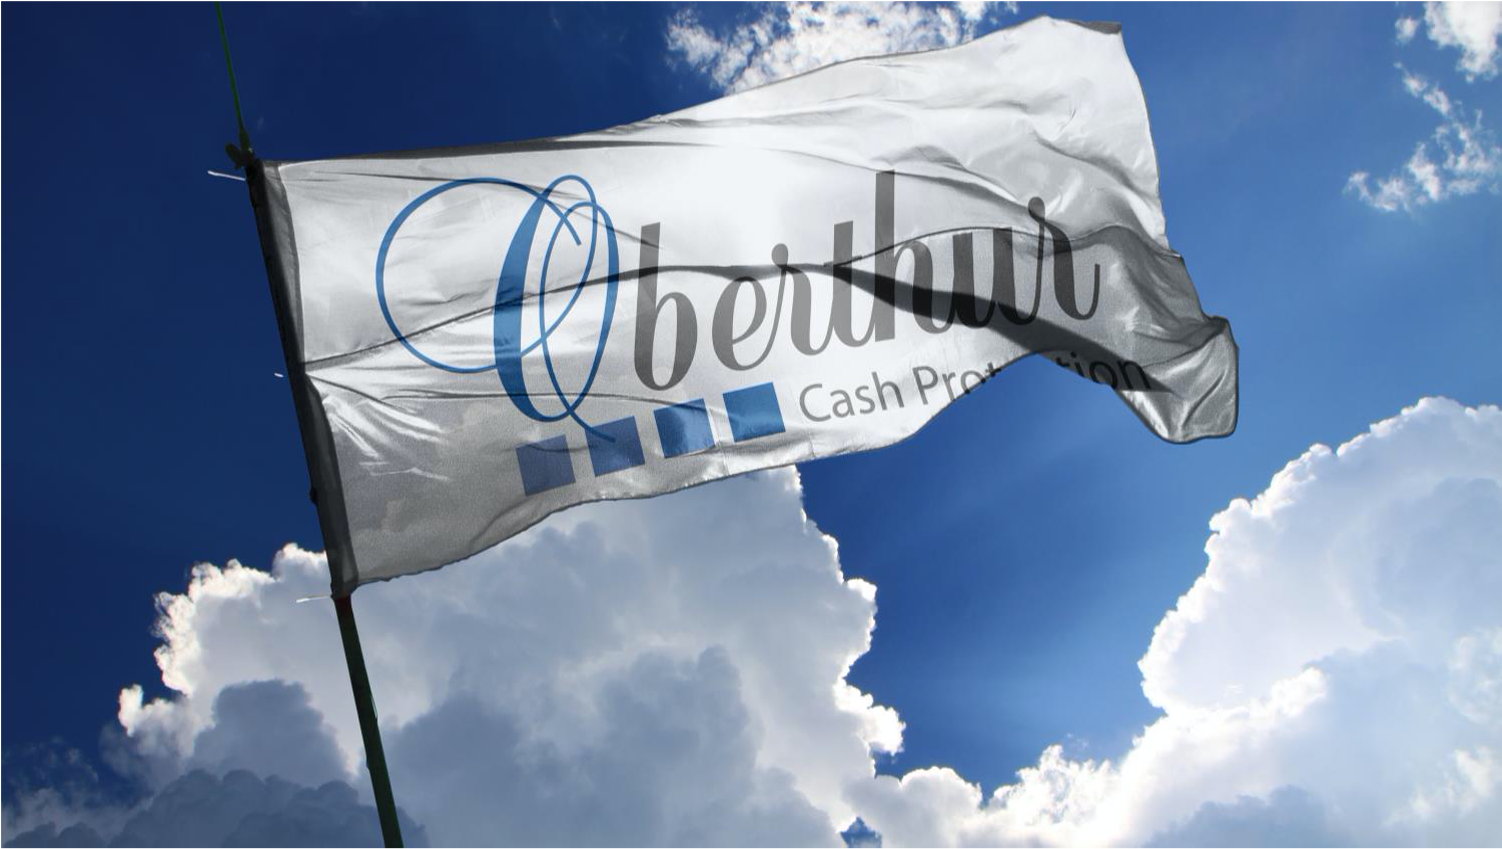 Oberthur Group provides a unique expertise of producing and protecting banknotes